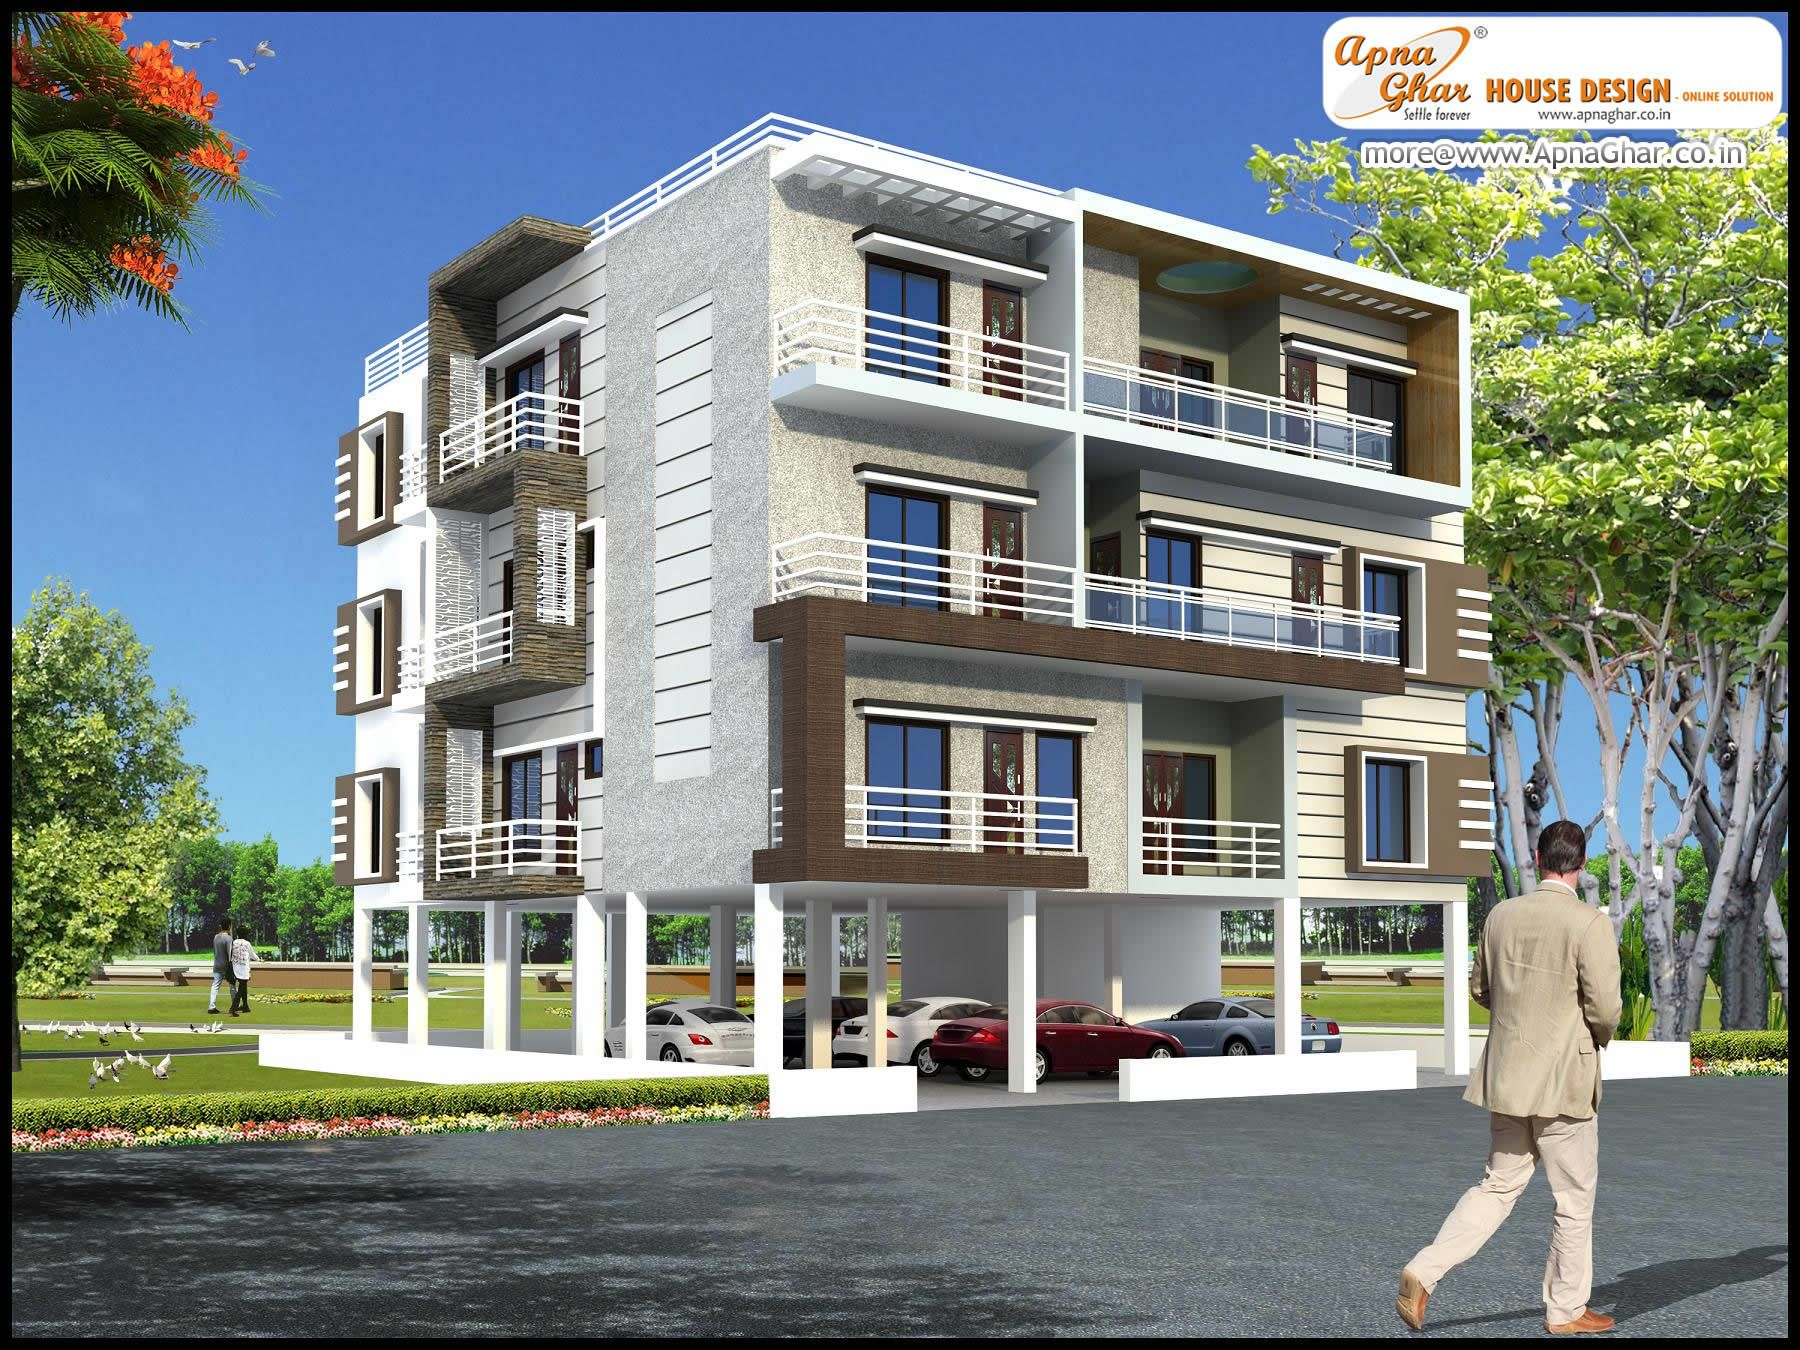 Charmant Modern Apartment Exterior Design An Online Complete Architectural Solution  Provider Company Click This Link To View